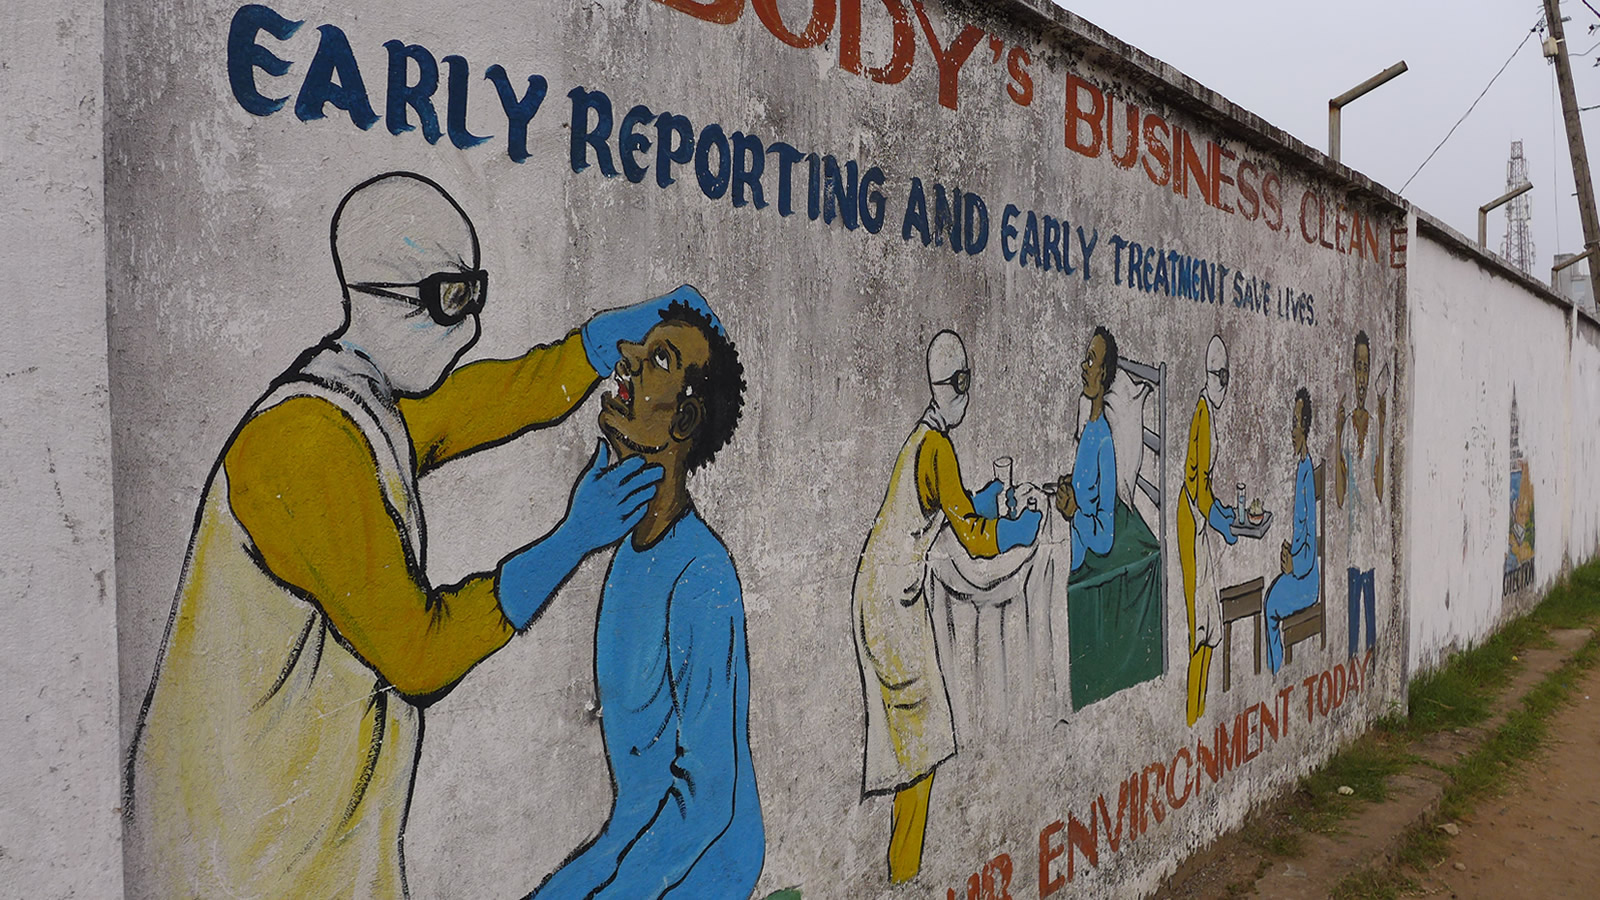 Mural of doctor and patient being treated for Ebola